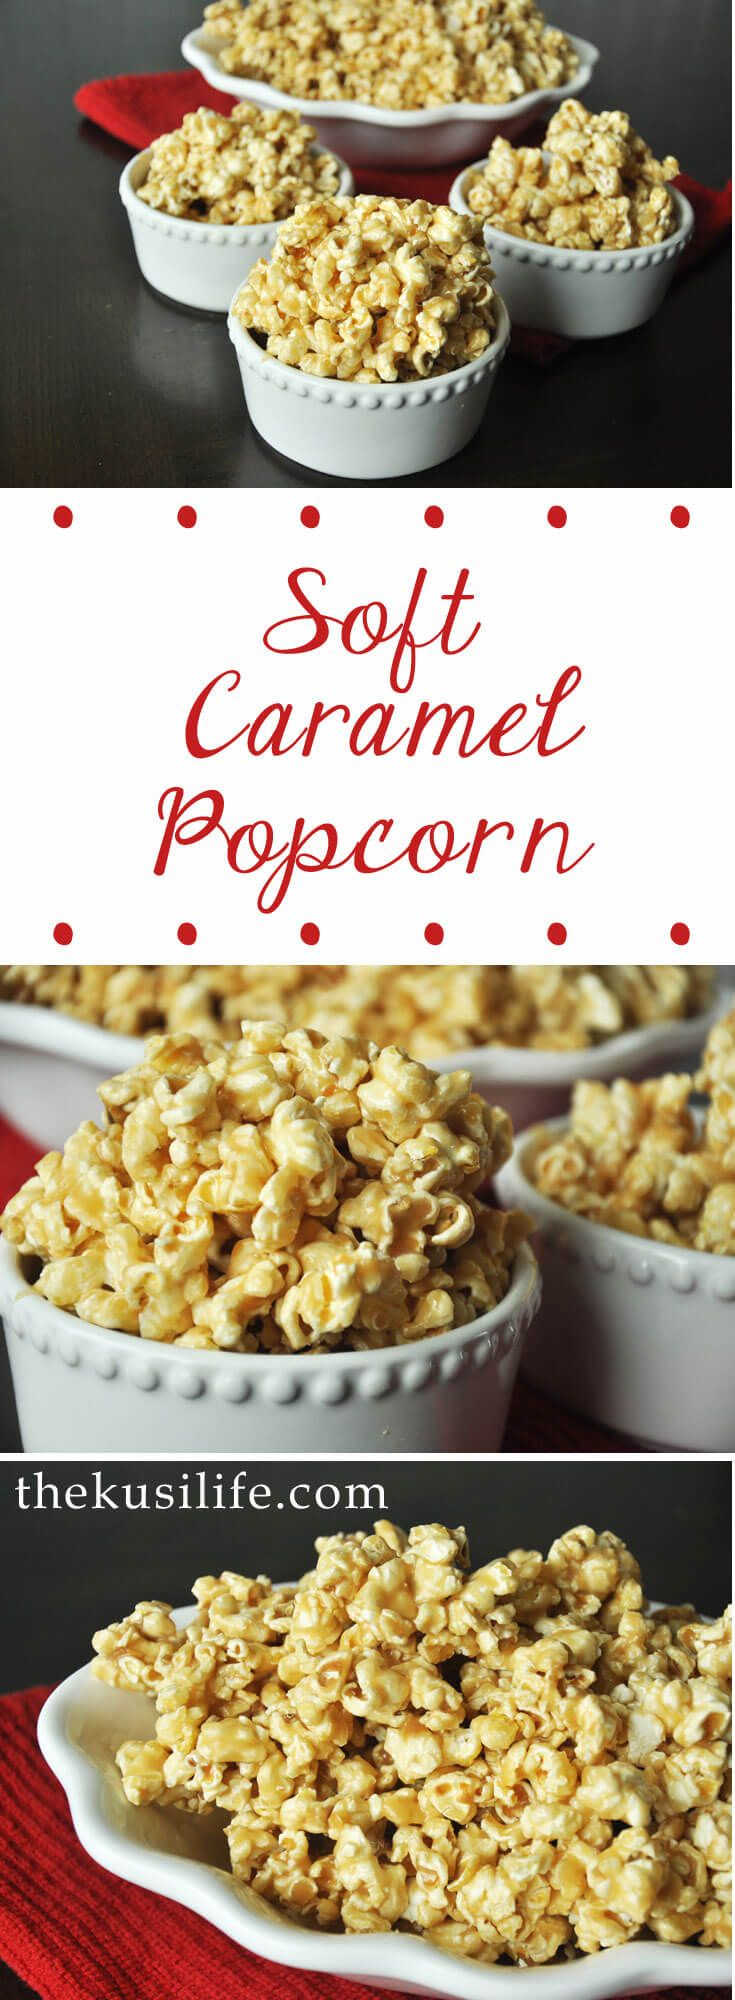 Soft Caramel Popcorn, with just 5 ingredients you can have caramel corn to feed a crowd, give away, or eat up alone!  - www.thekusilife.com  via @thekusilife